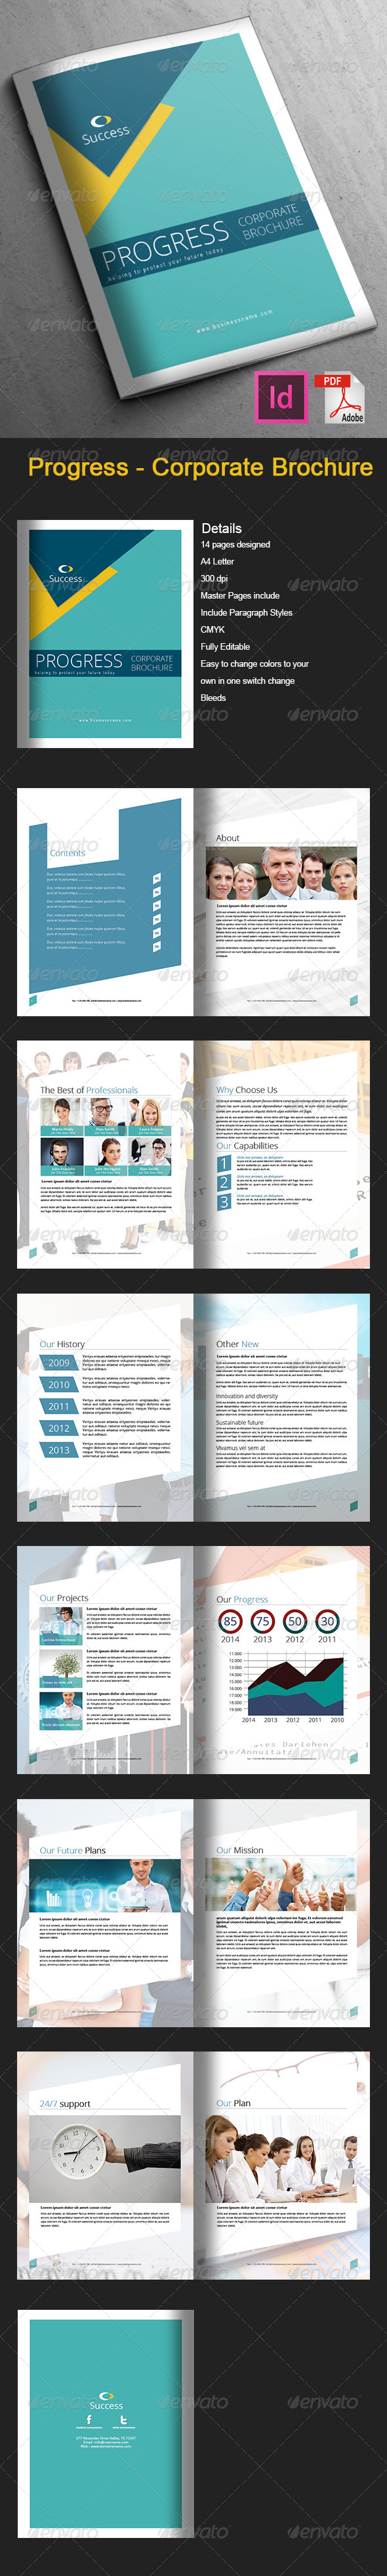 GraphicRiver Progress Corporate Brochure 14 pages 6980486